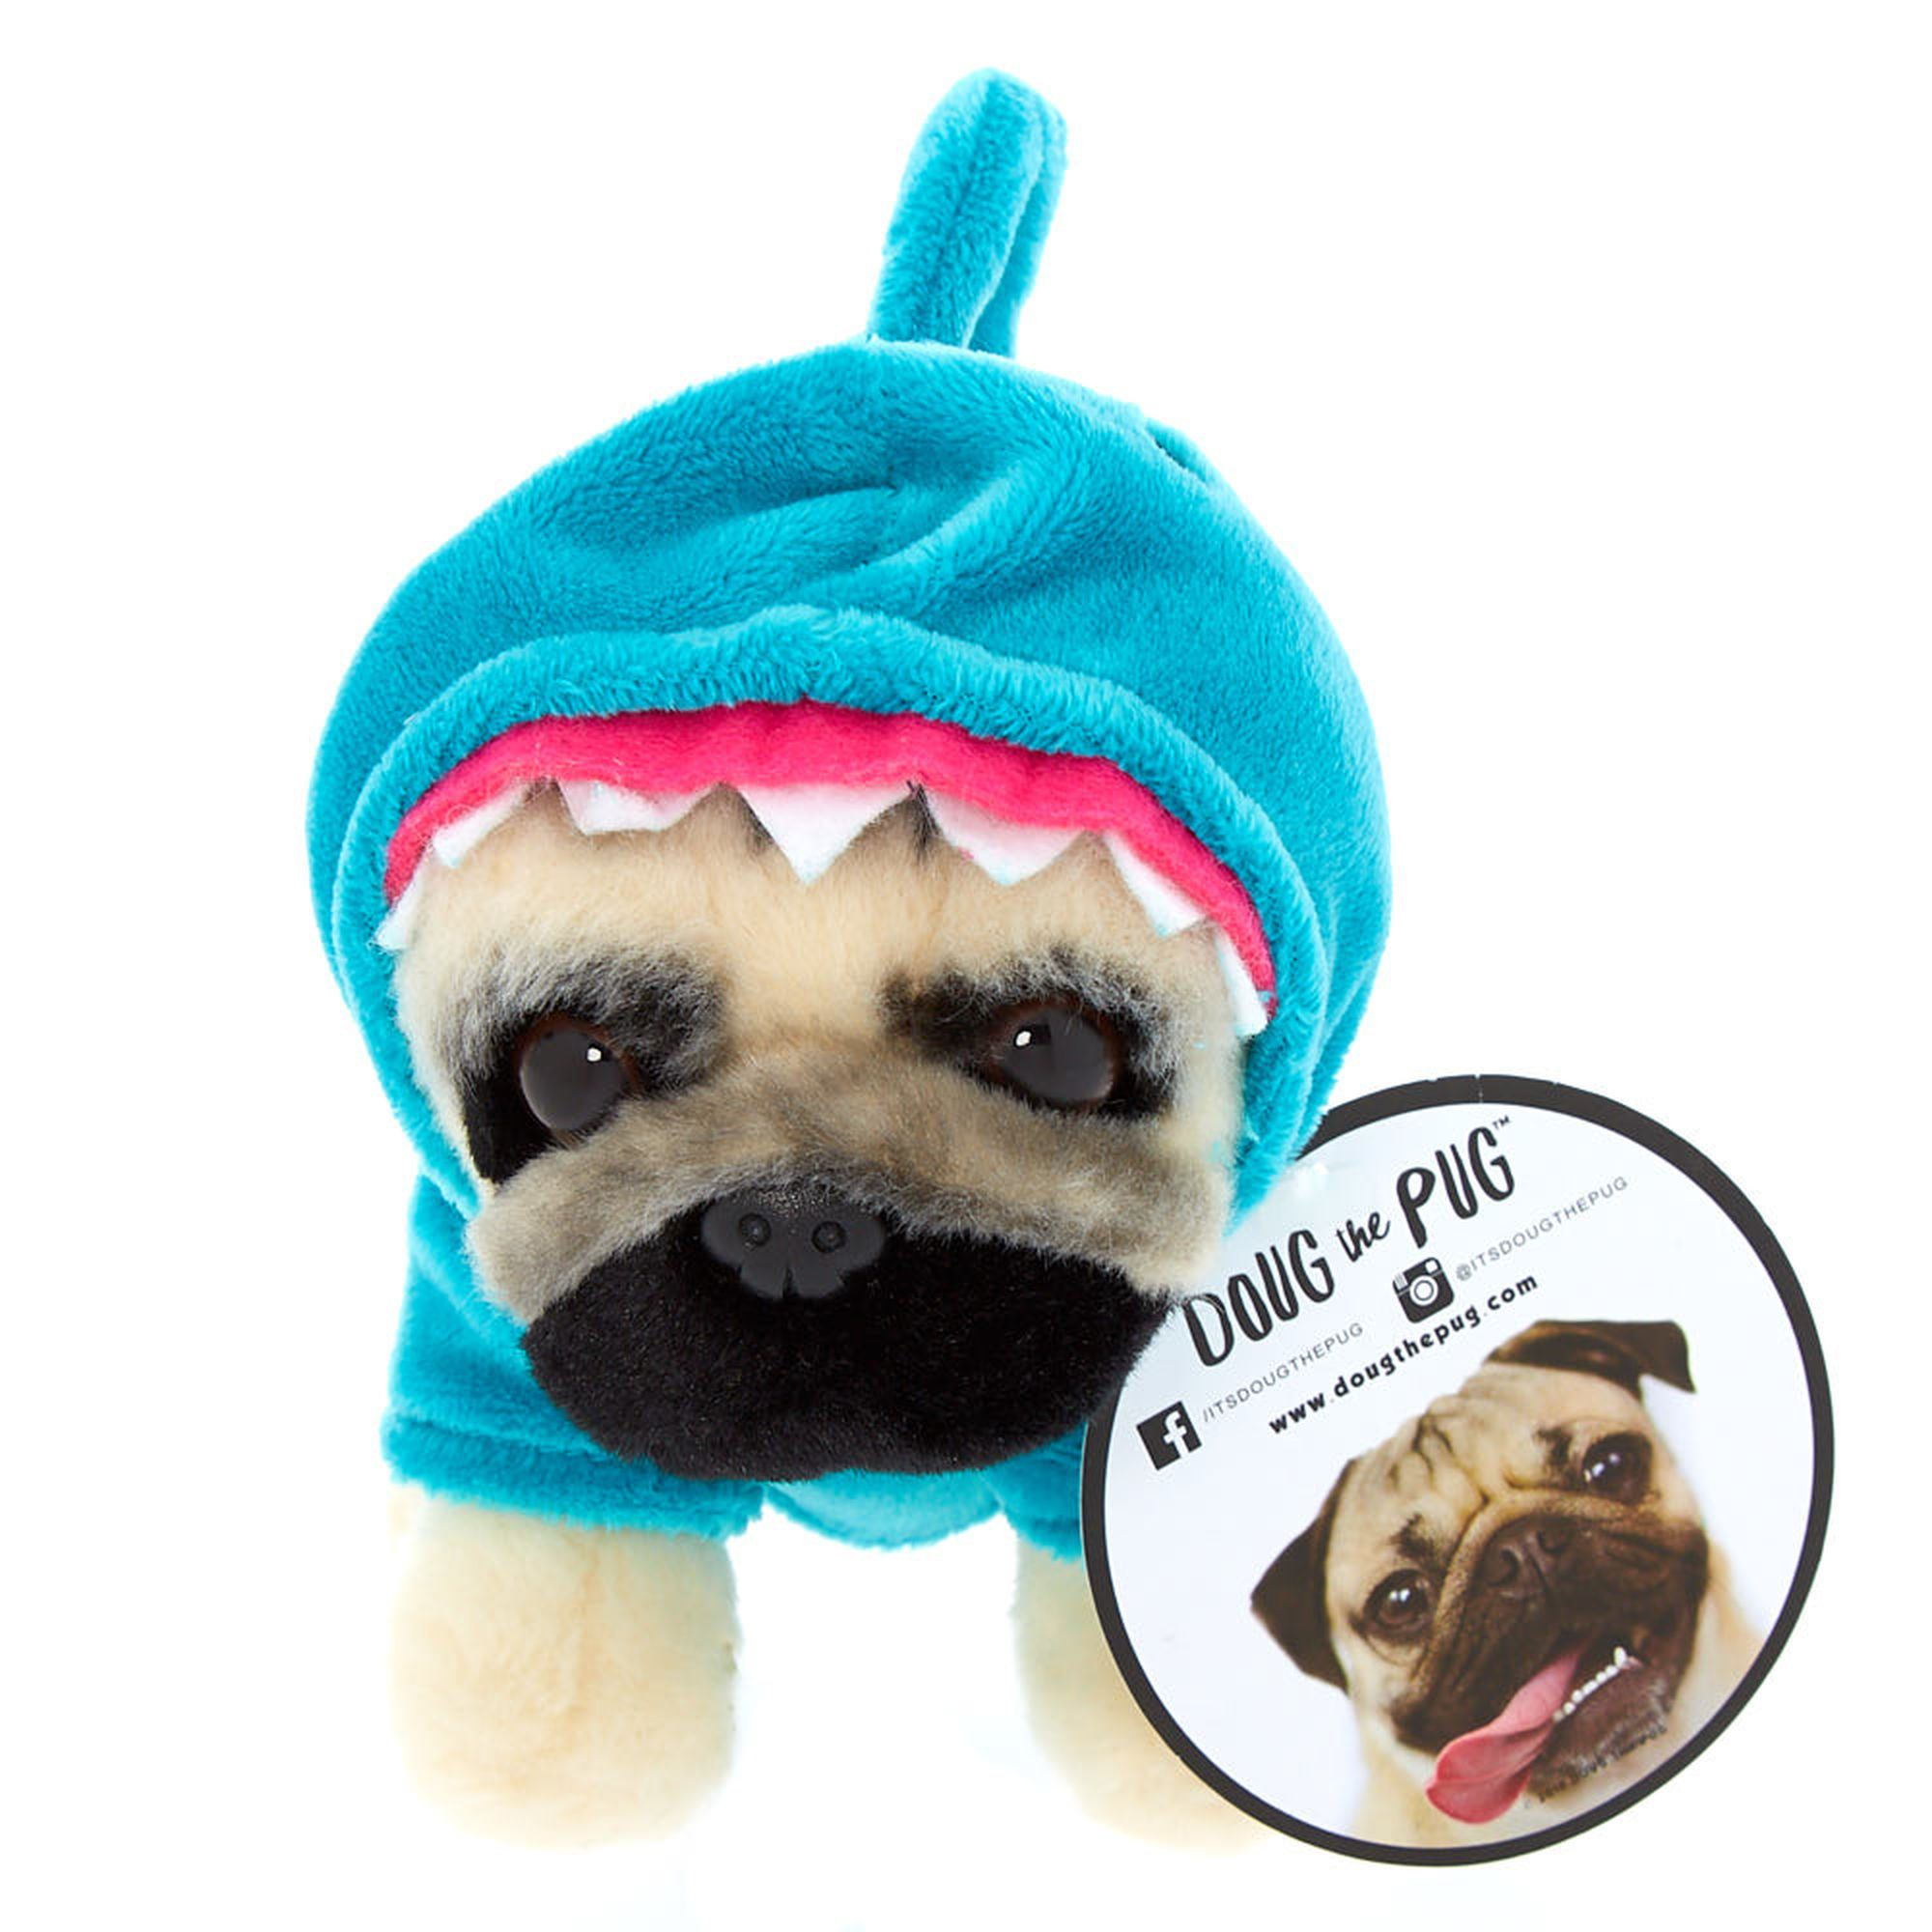 Doug The Pug C Small Shark Plush Toy Turquoise Shark Plush